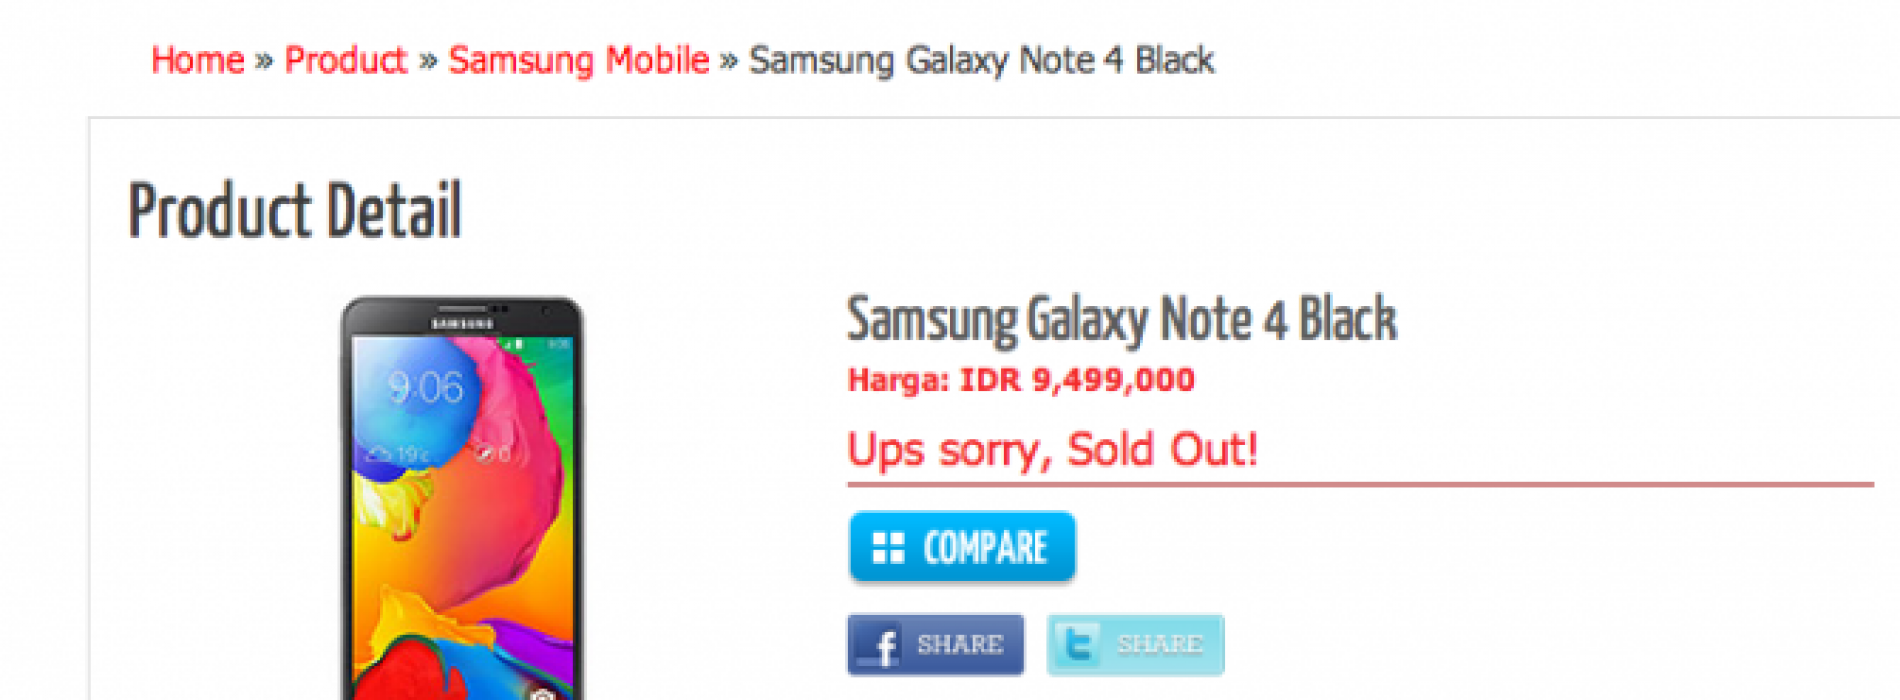 Samsung Galaxy Note 4 specs leaked with 4GB RAM, QHD display